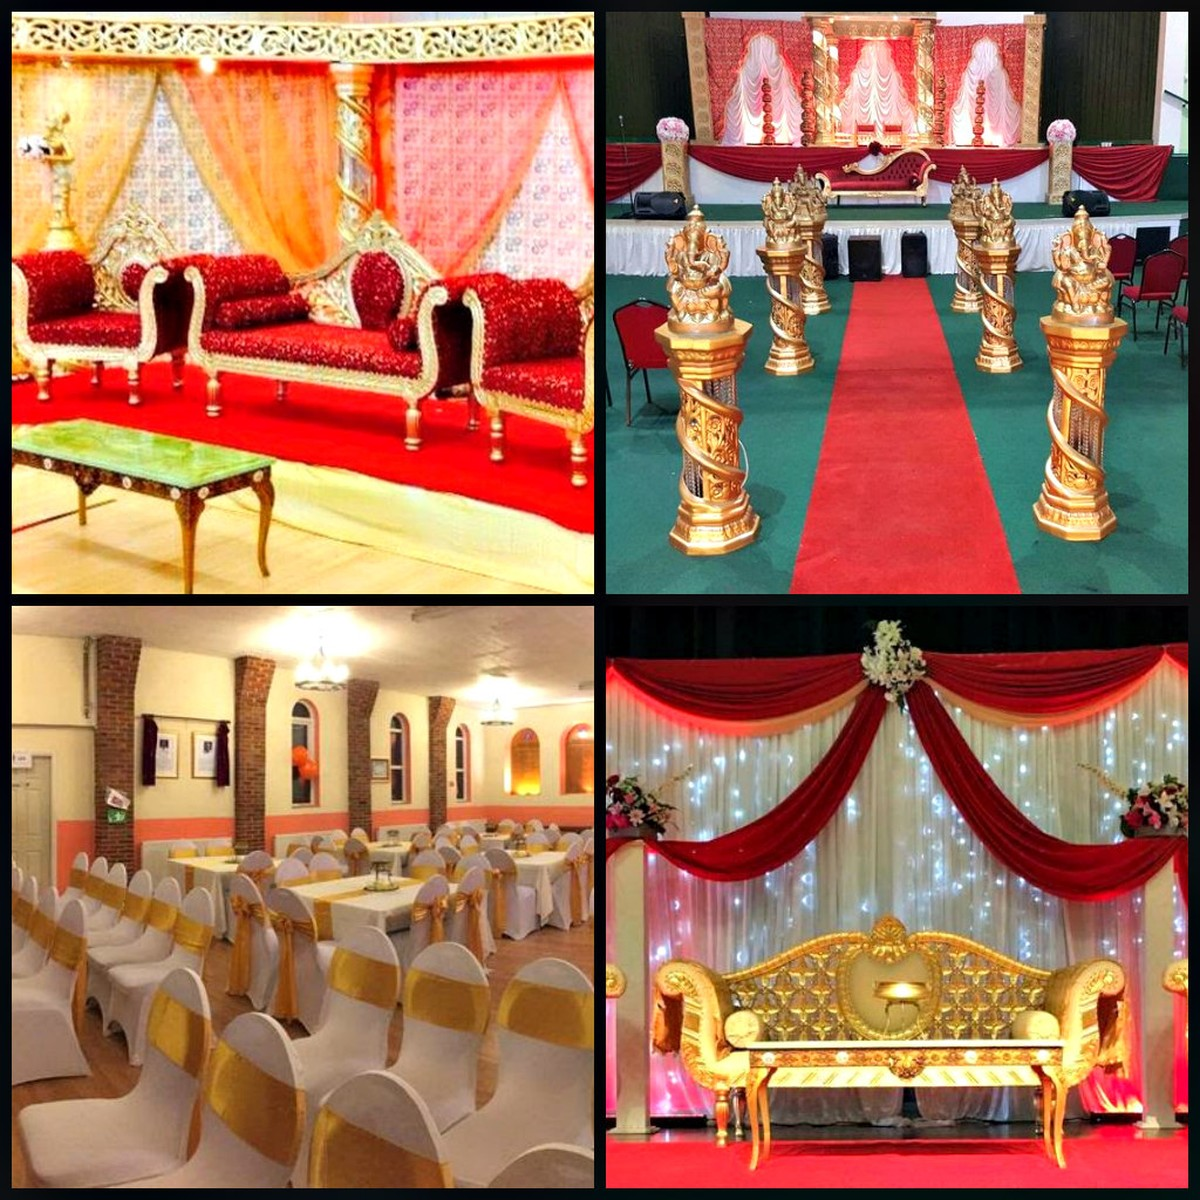 Profitable business for sale chair cover and venue decoration indian wedding themed for sale junglespirit Image collections